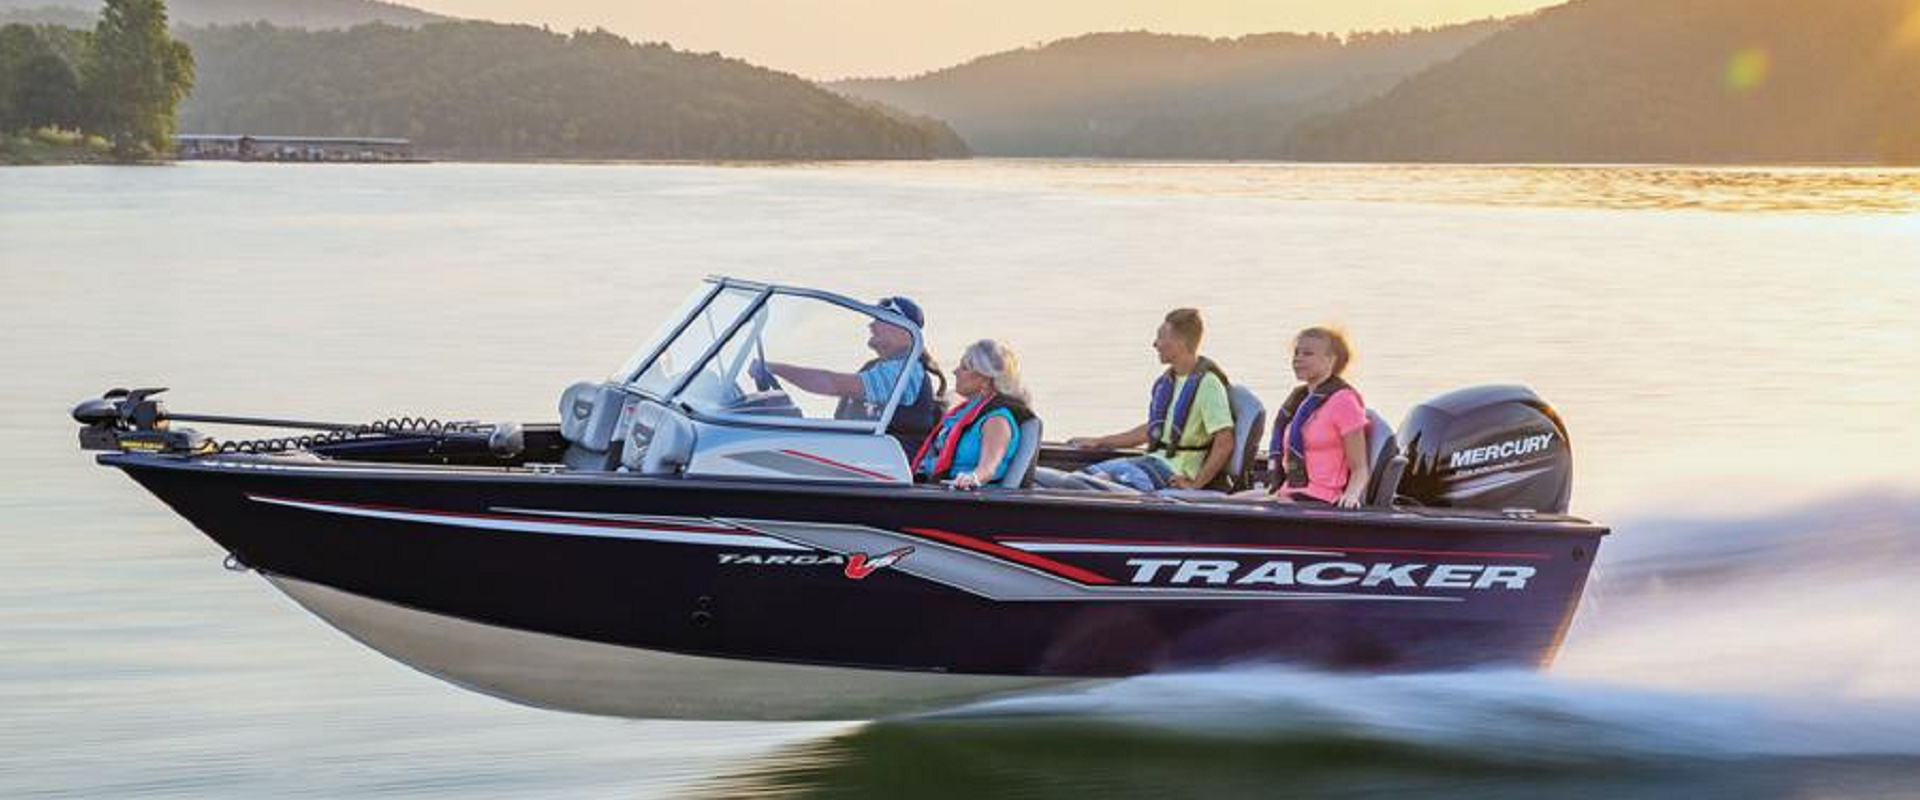 Central Kentucky S Premier Boat Dealer Stokley S Marine